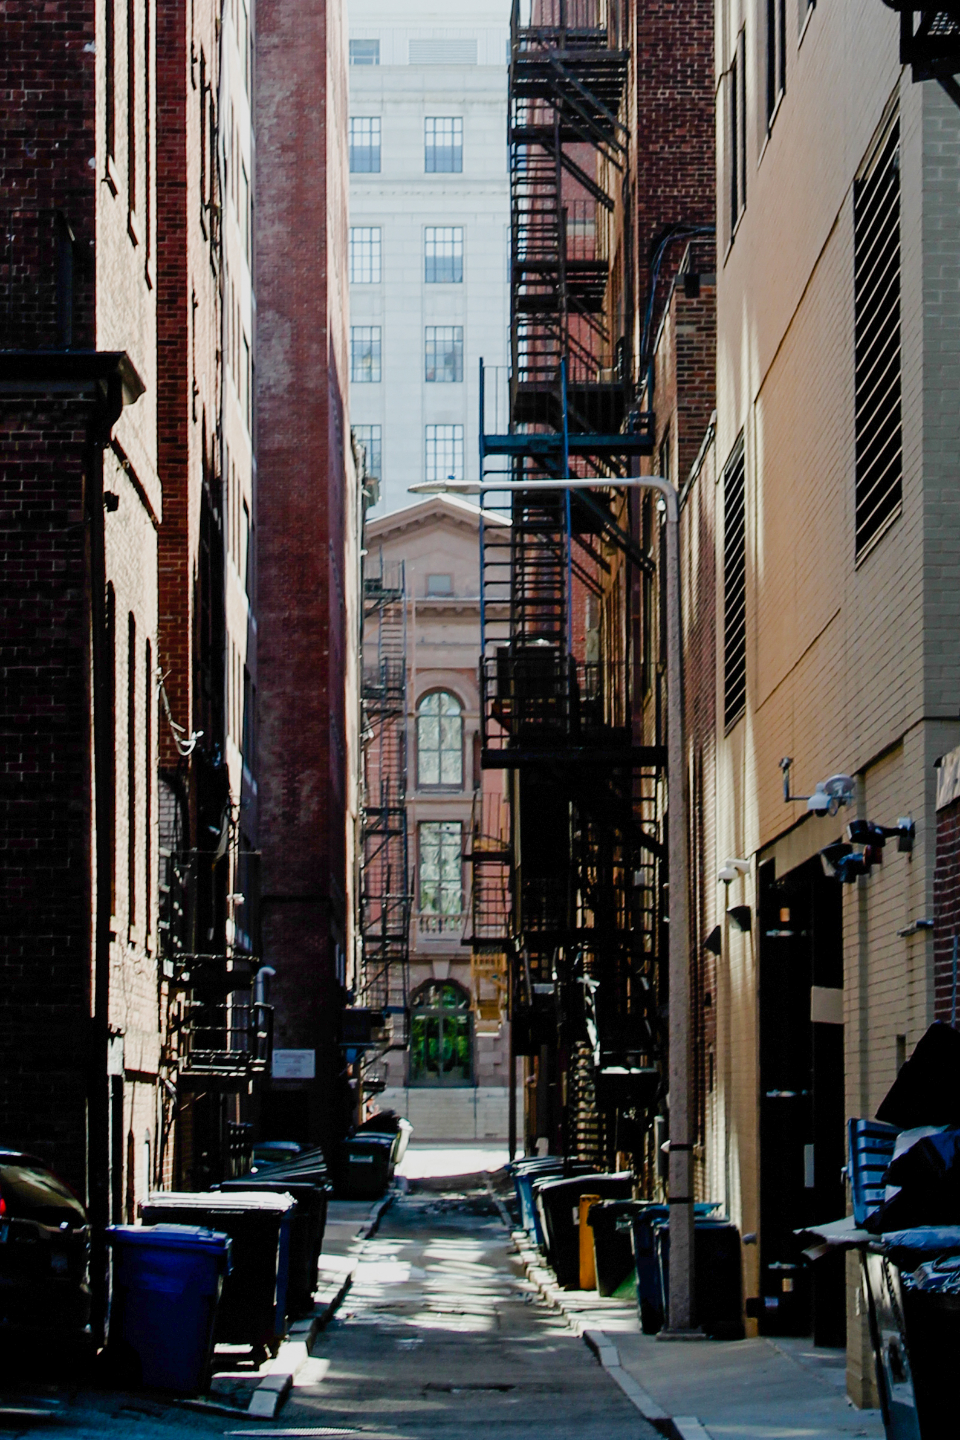 city fire escape buildings alley windows apartments brick tall stairs narrow exterior architecture urban downtown trash